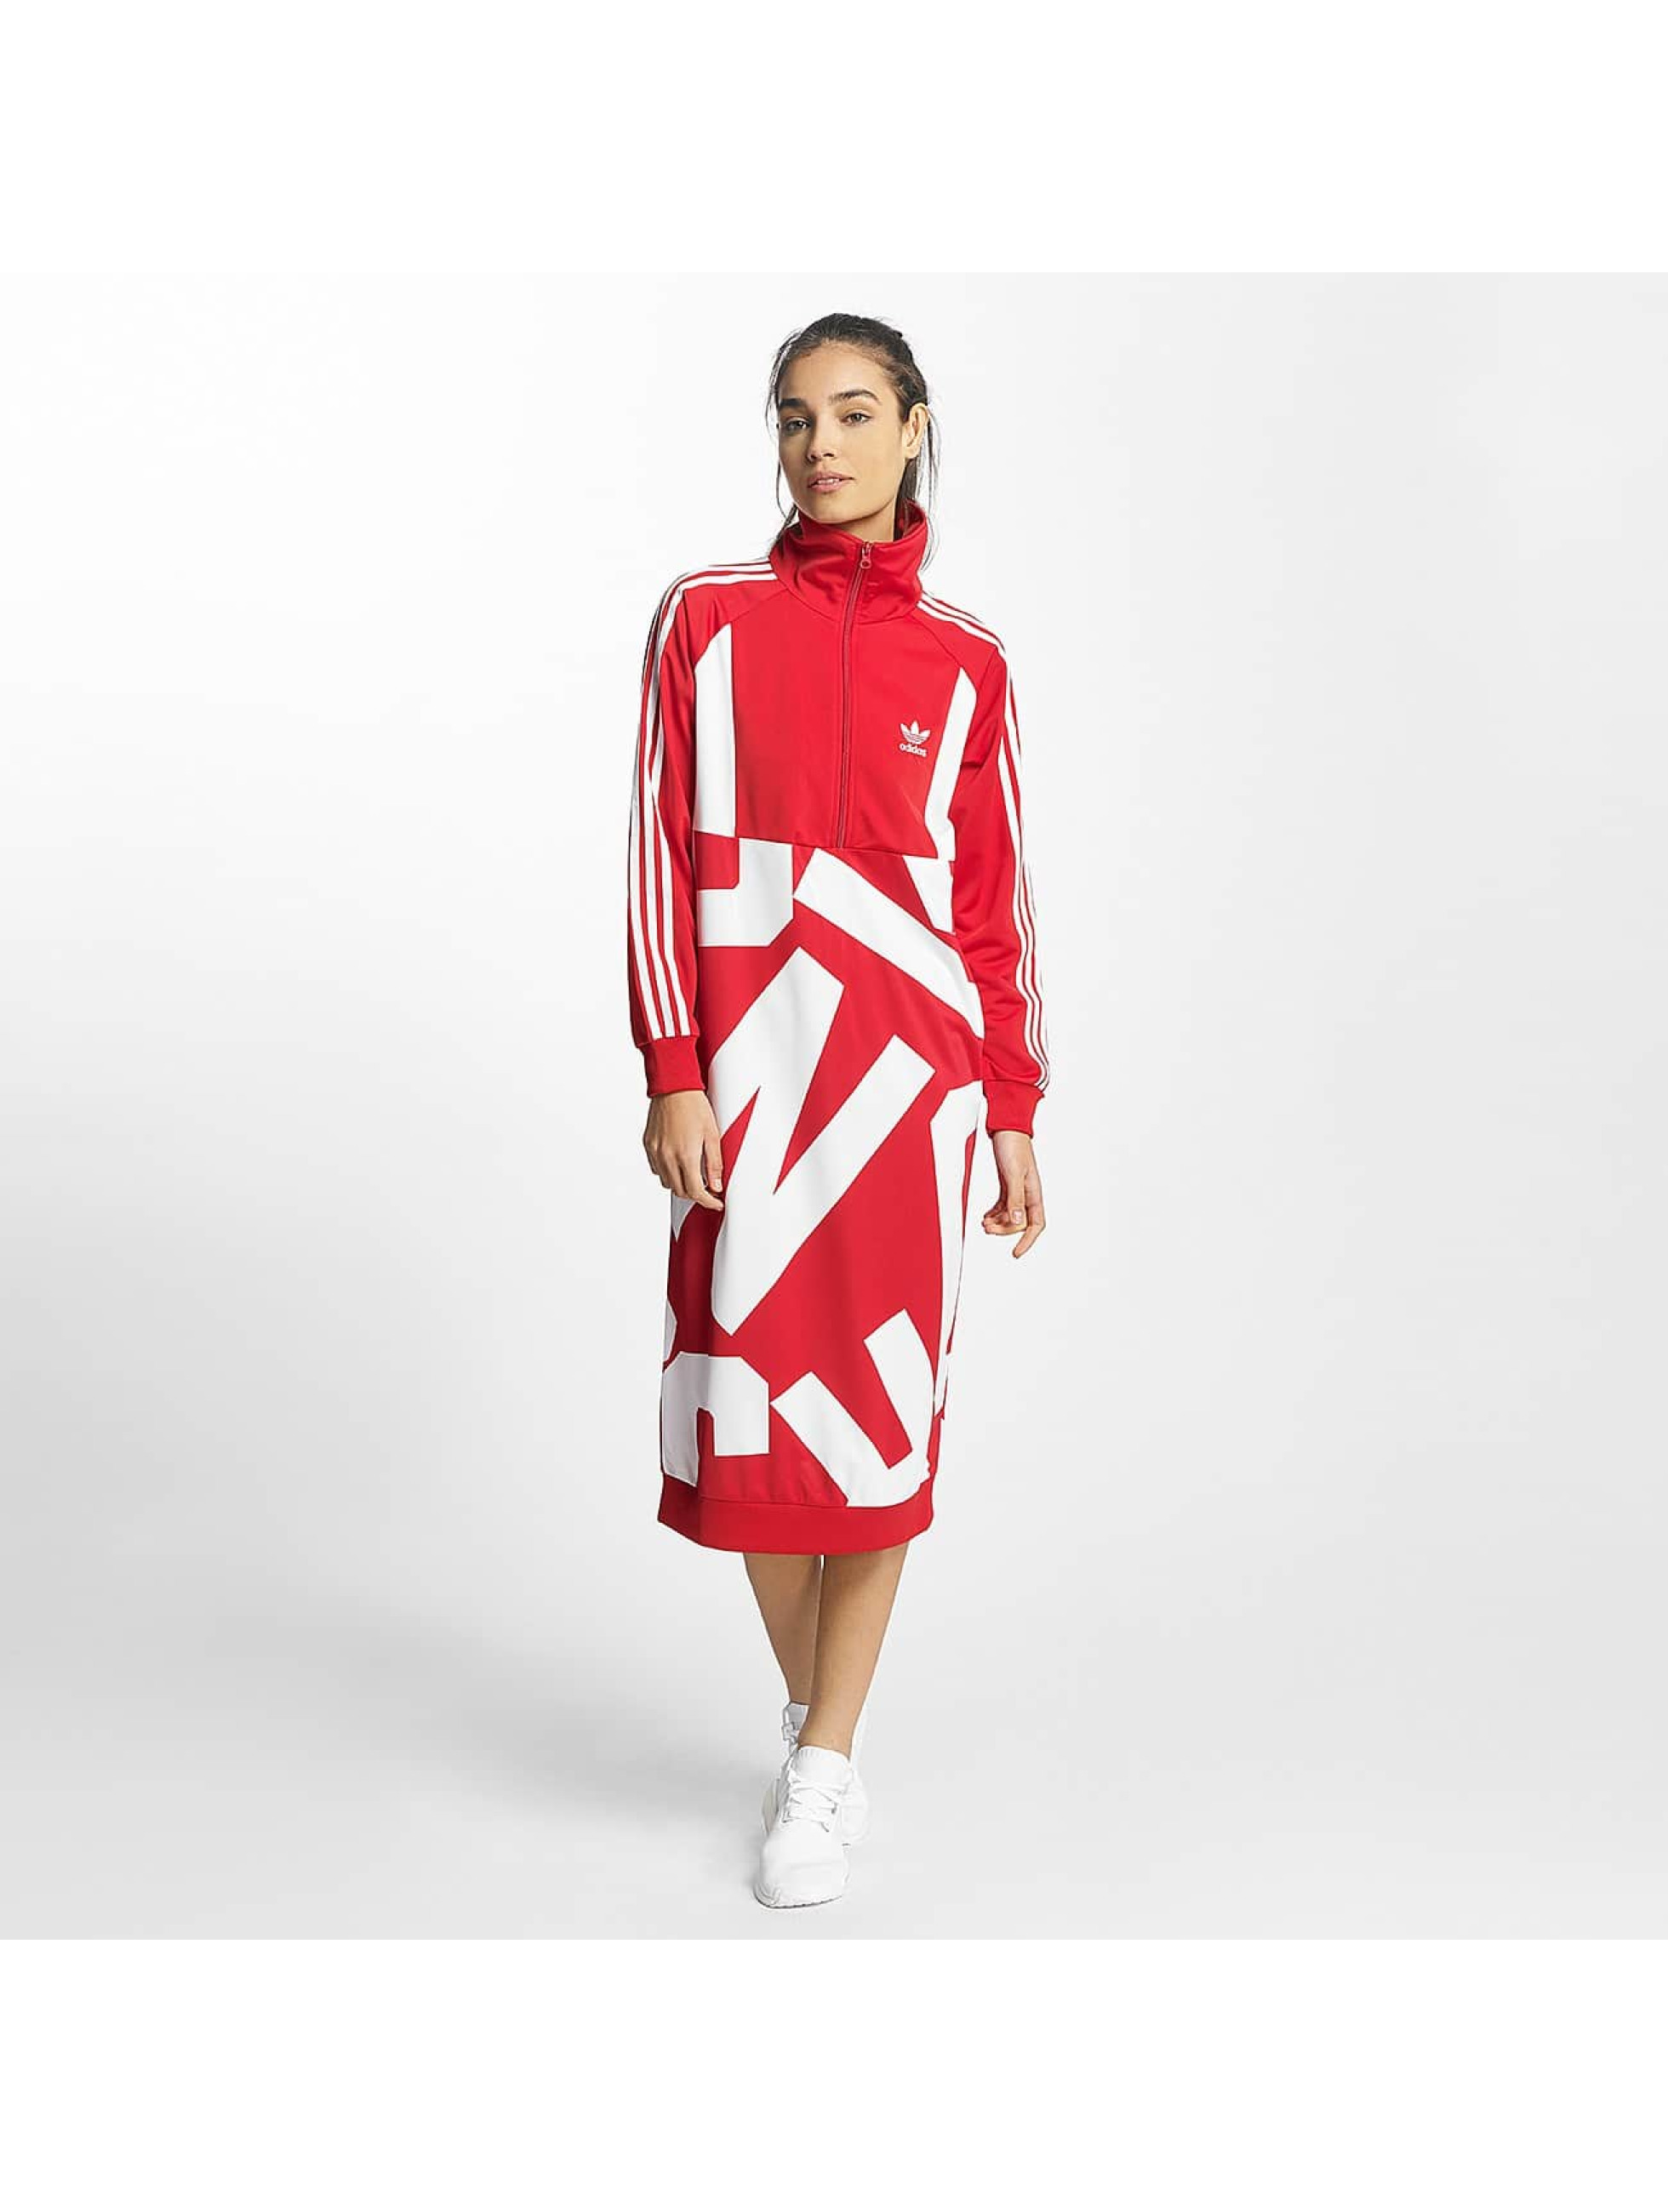 Blog AgeDefshop Adidas Collection France Bold c3LR4AS5jq